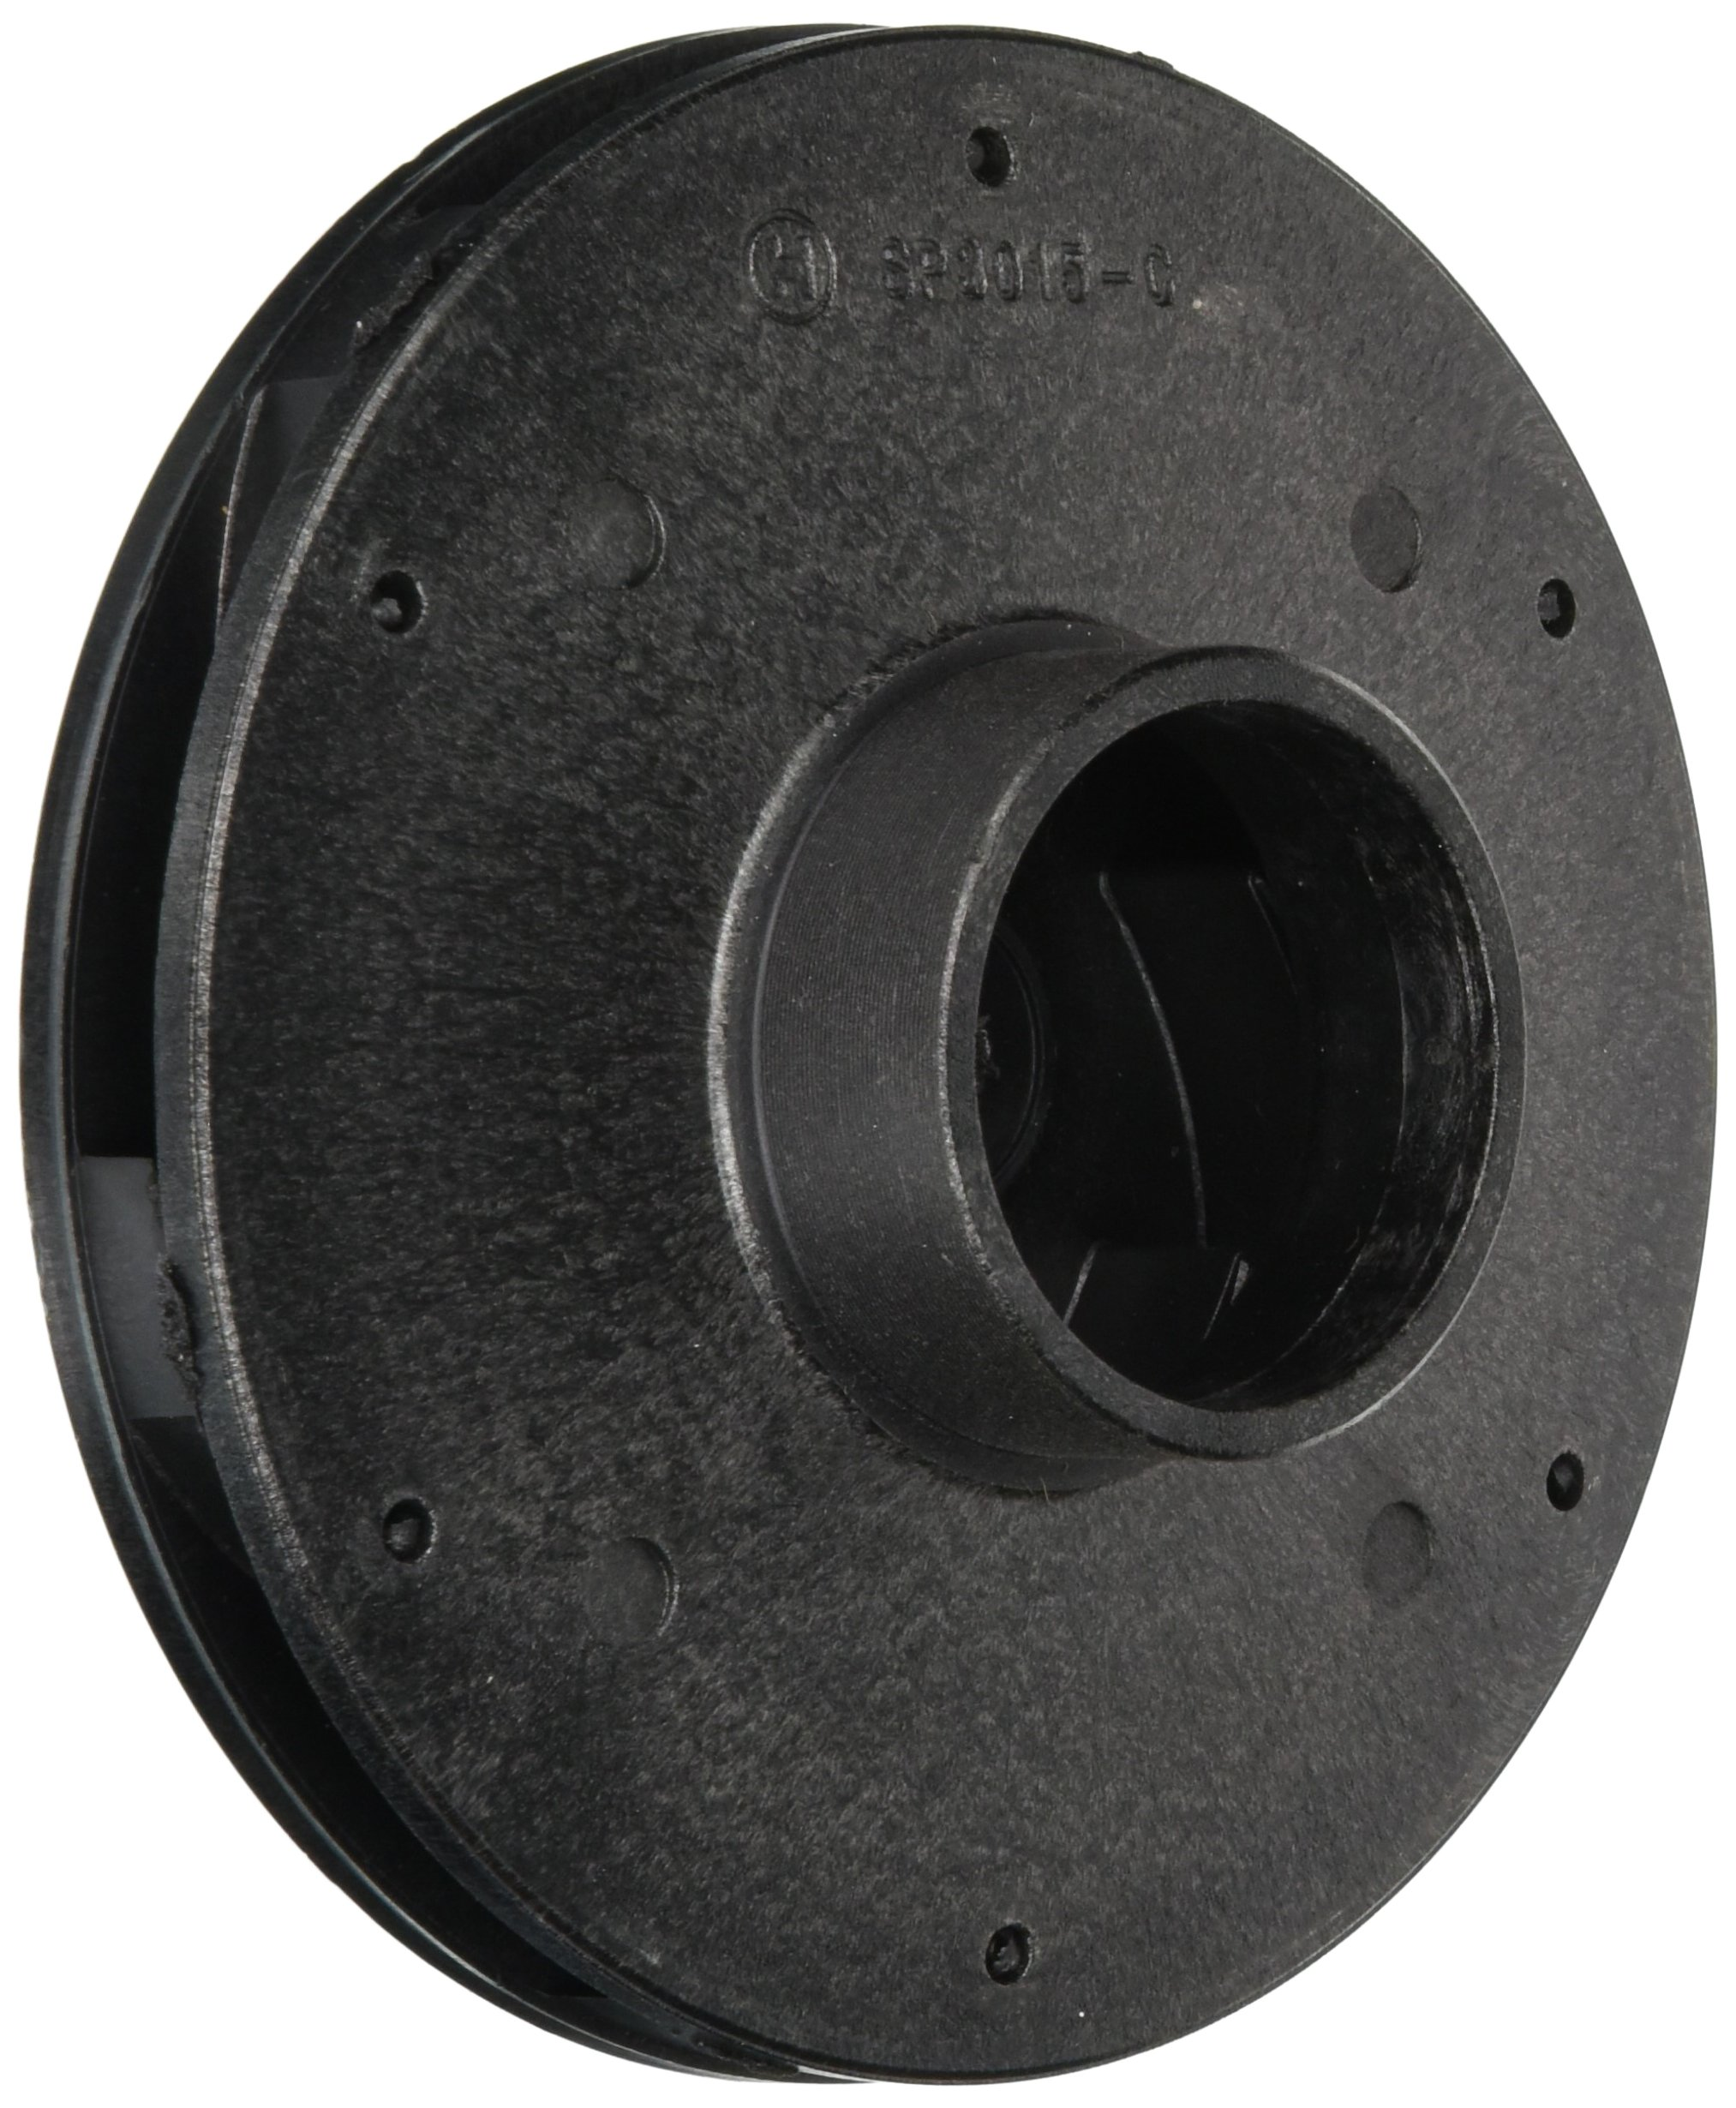 Hayward SPX3015C 1-1/2-Horsepower Impeller Replacement for Hayward Super Ii Pump by Hayward (Image #1)